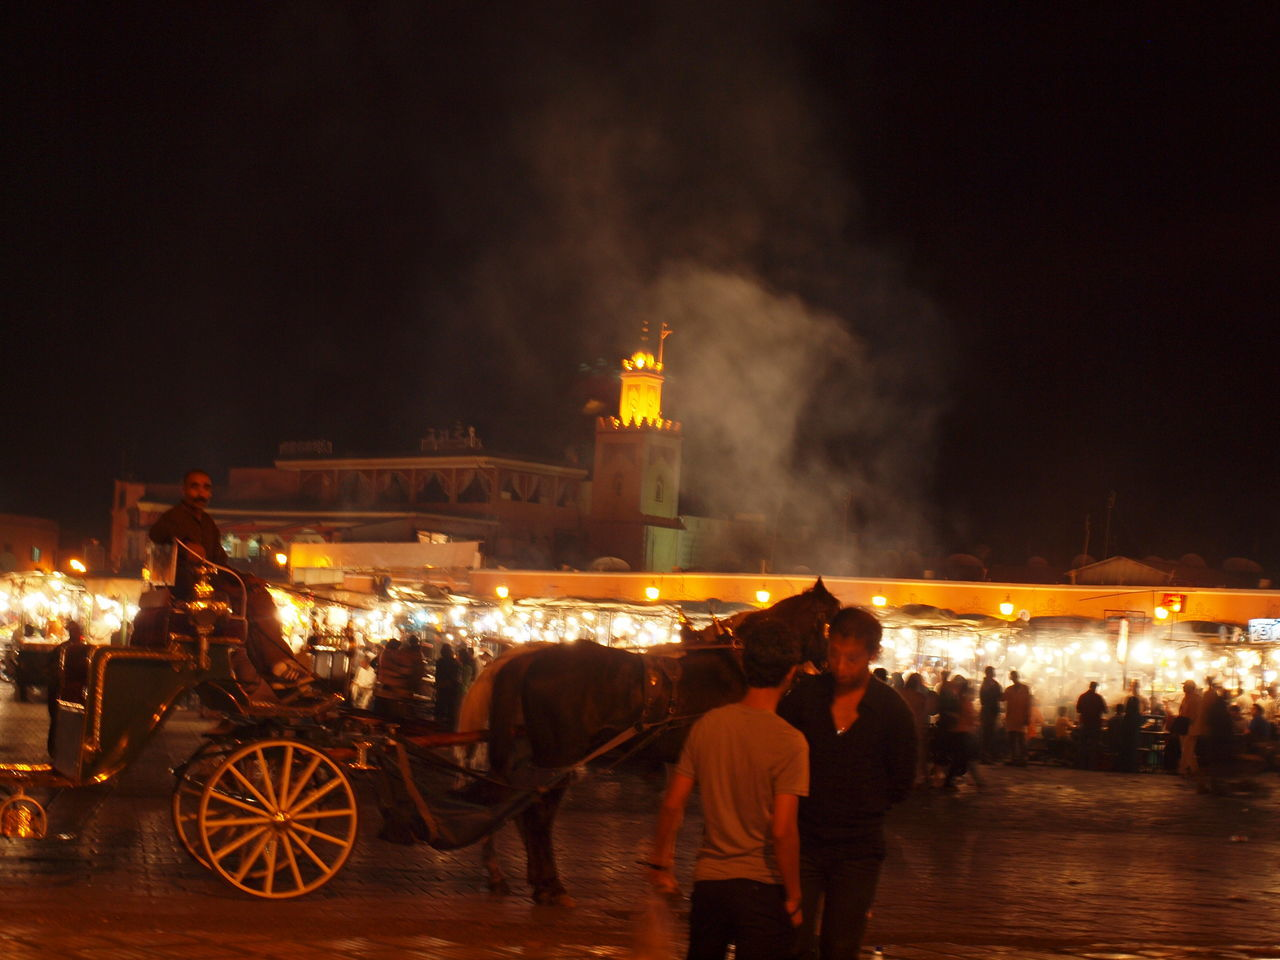 night, illuminated, real people, built structure, transportation, horse cart, mode of transport, sky, men, architecture, large group of people, outdoors, women, building exterior, domestic animals, mammal, people